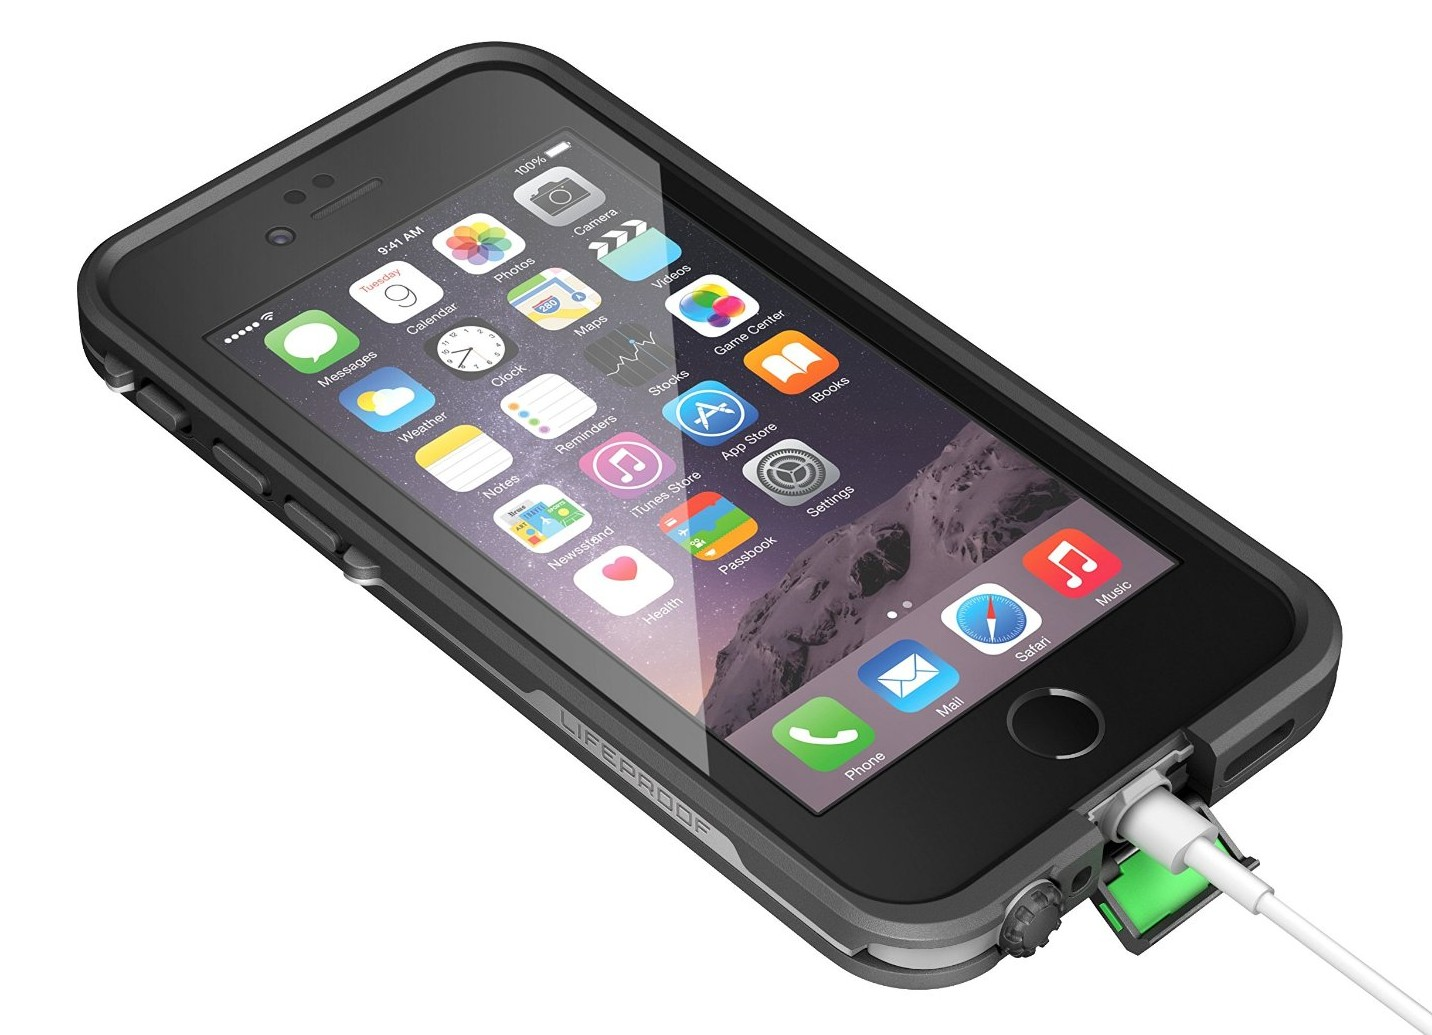 lifeproof case for iphone 6 frē series from lifeproof is a waterproof iphone 6 2178